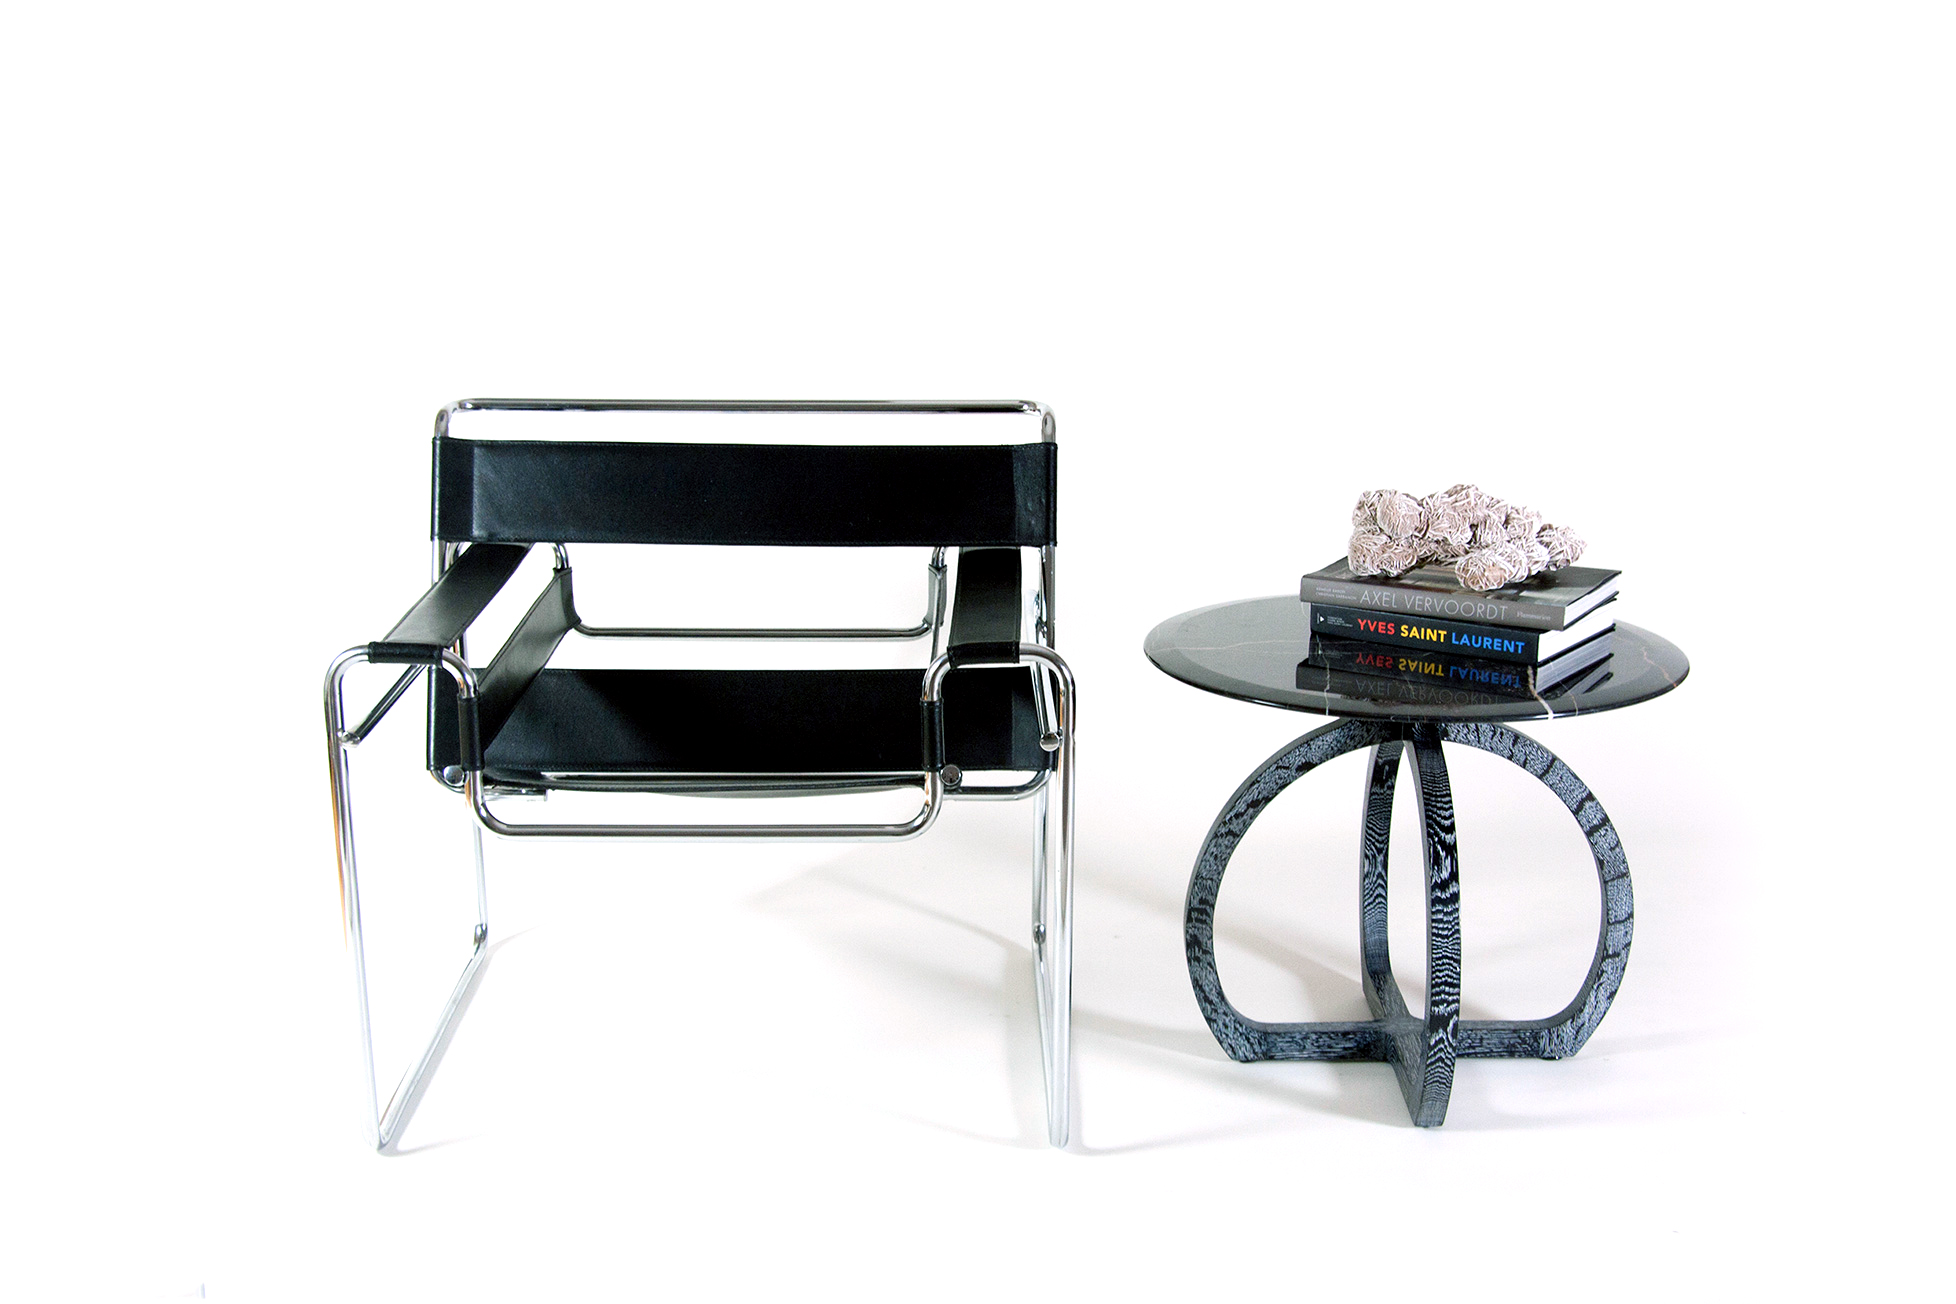 ELLIOT-EAKIN-Furniture---Ceruse-Side-Table---Context-FRONT.jpg